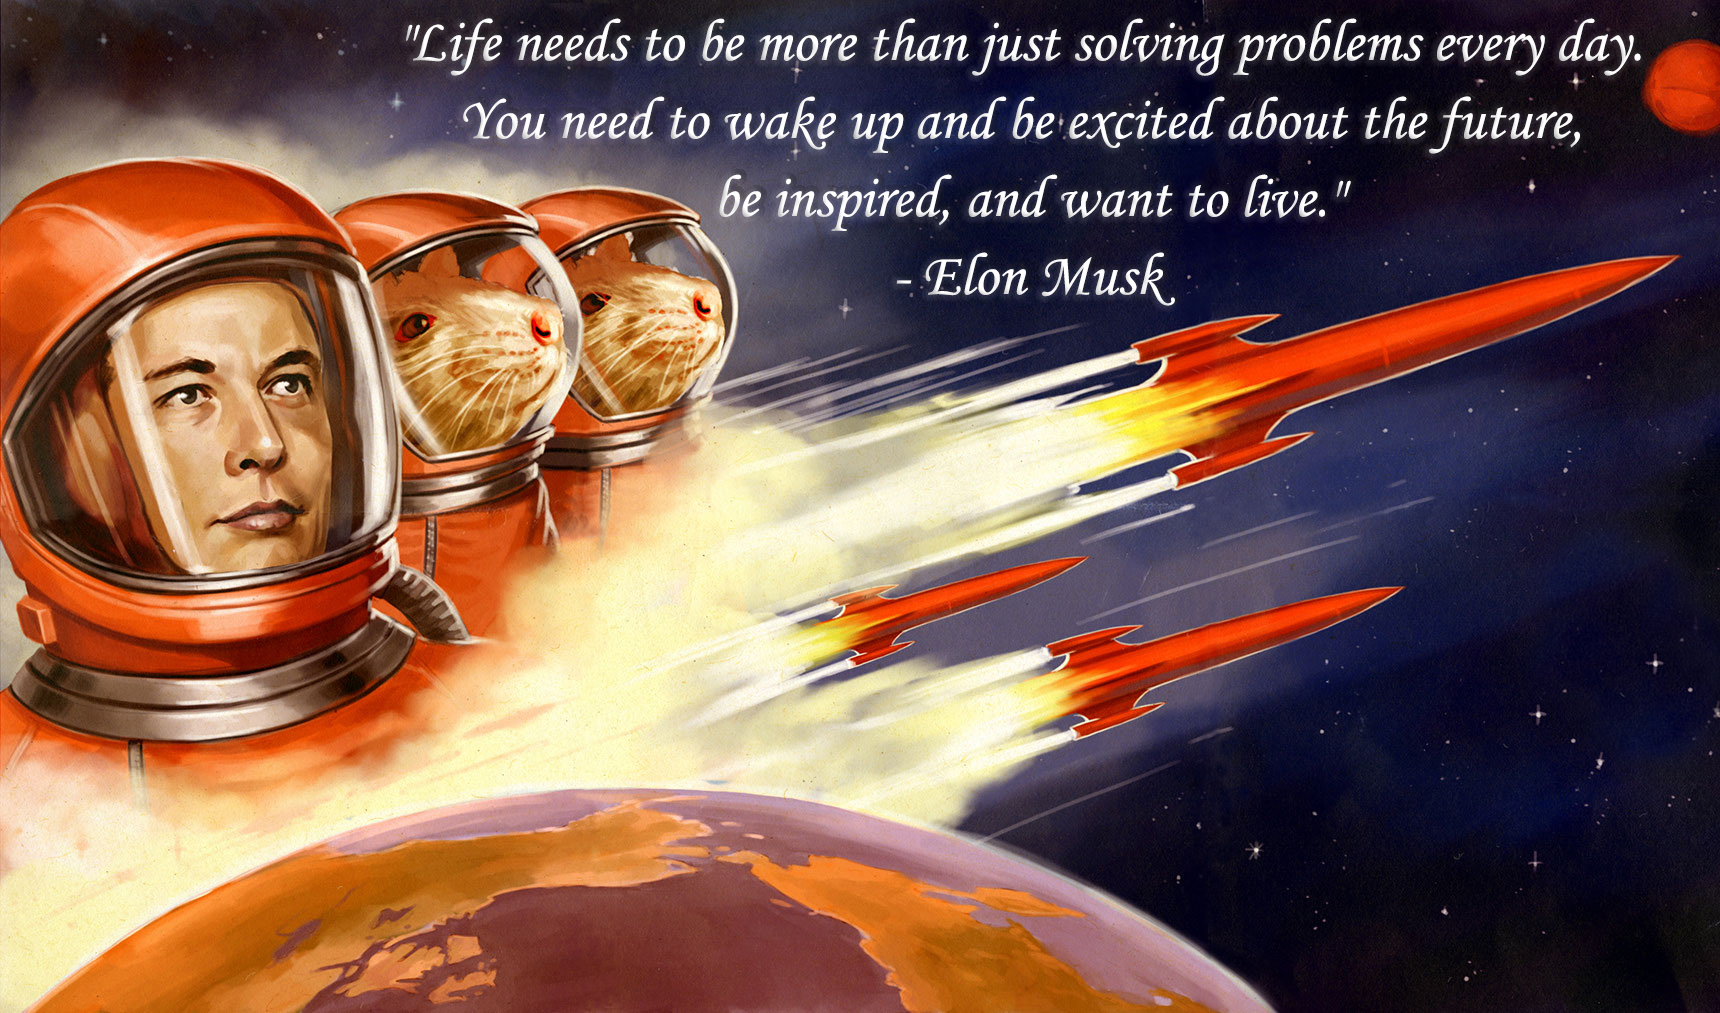 [Image] Inspired to live – Elon Musk